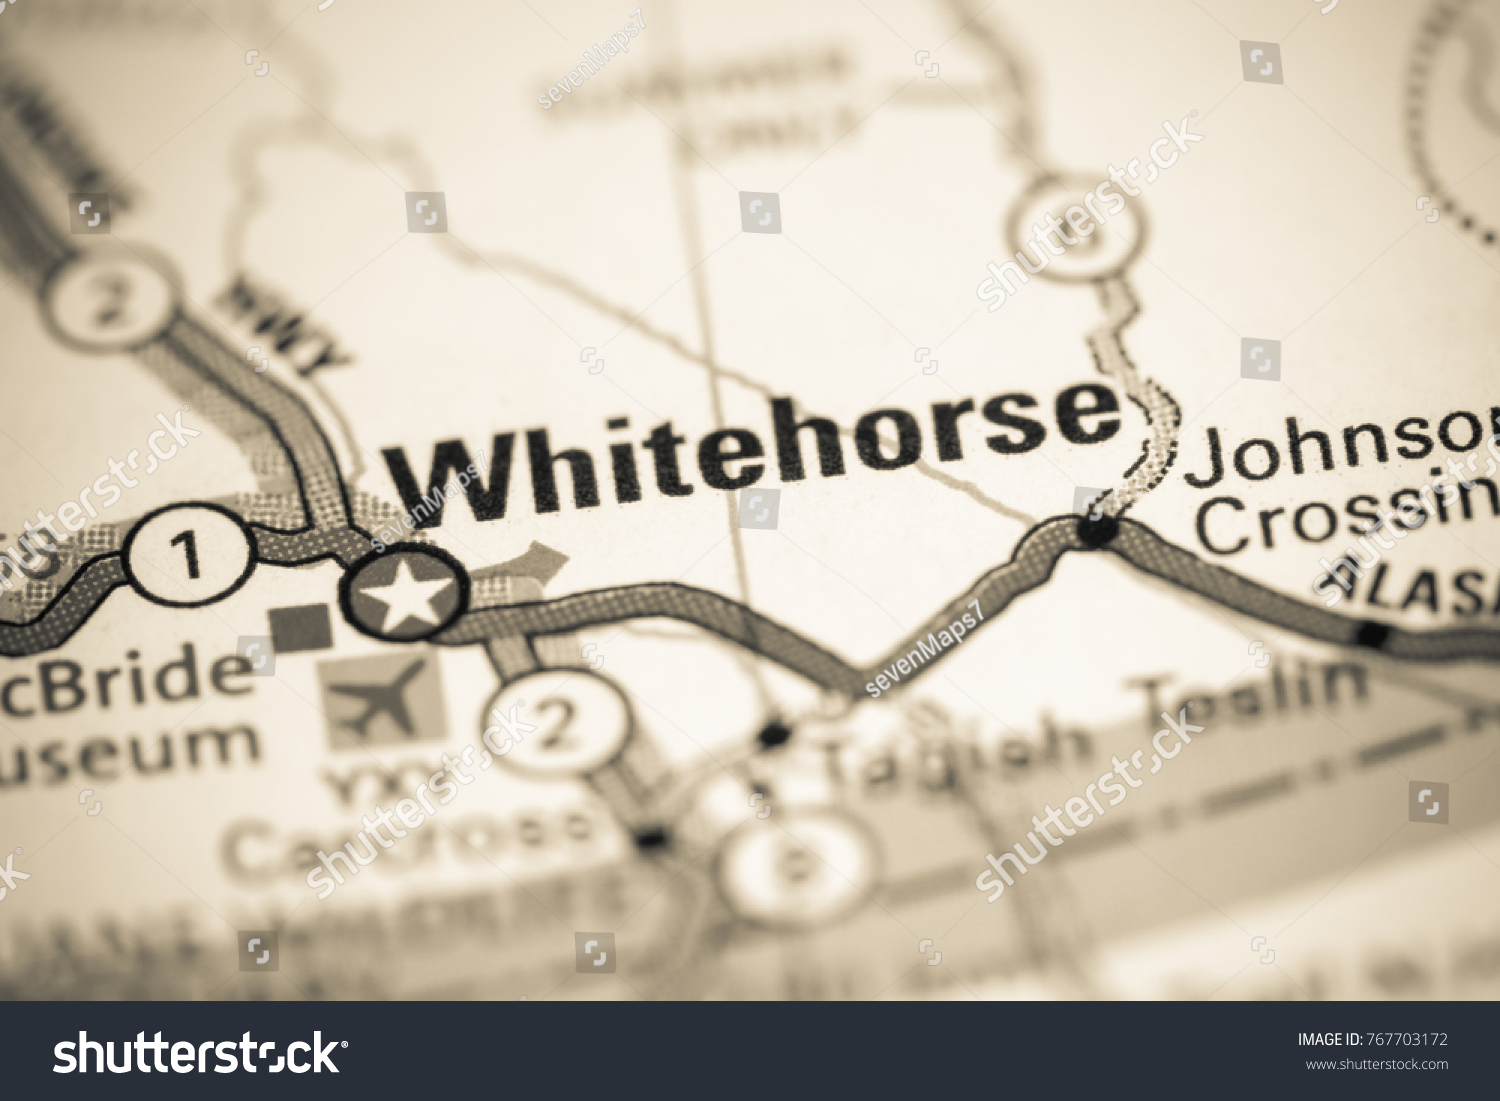 Whitehorse Canada On Map Stock Photo Edit Now 767703172 Shutterstock